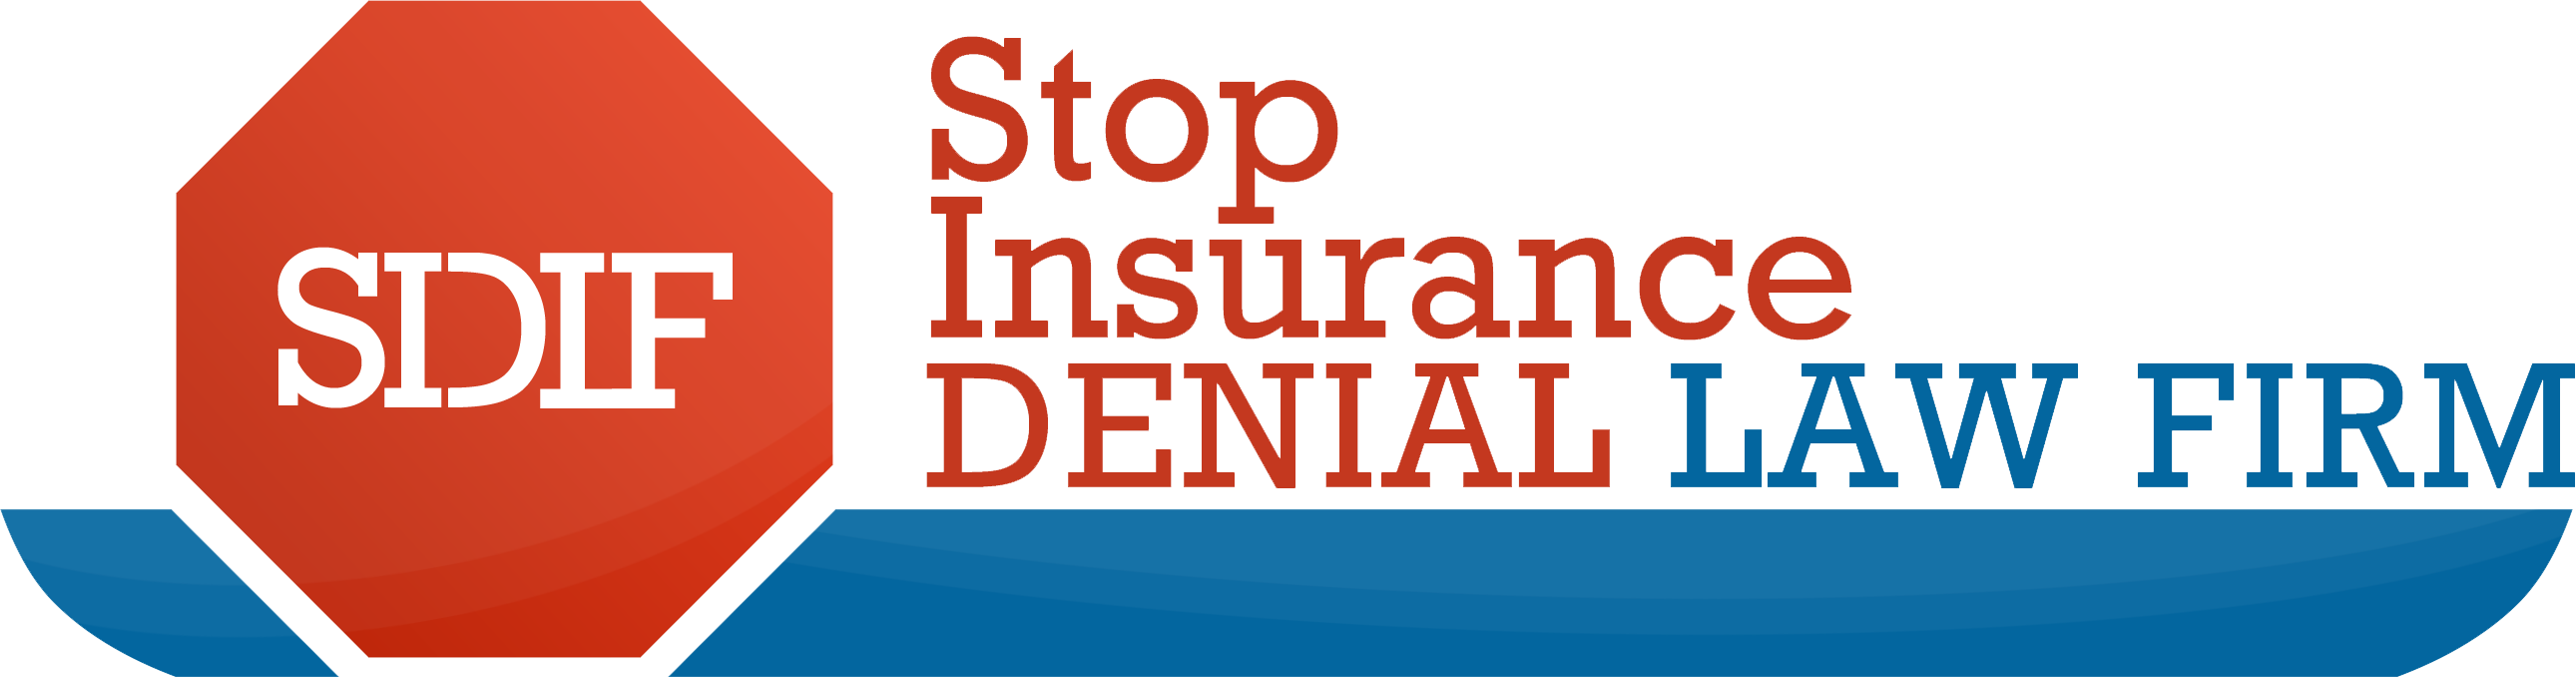 Stop Insurance Denial Law Firm logo